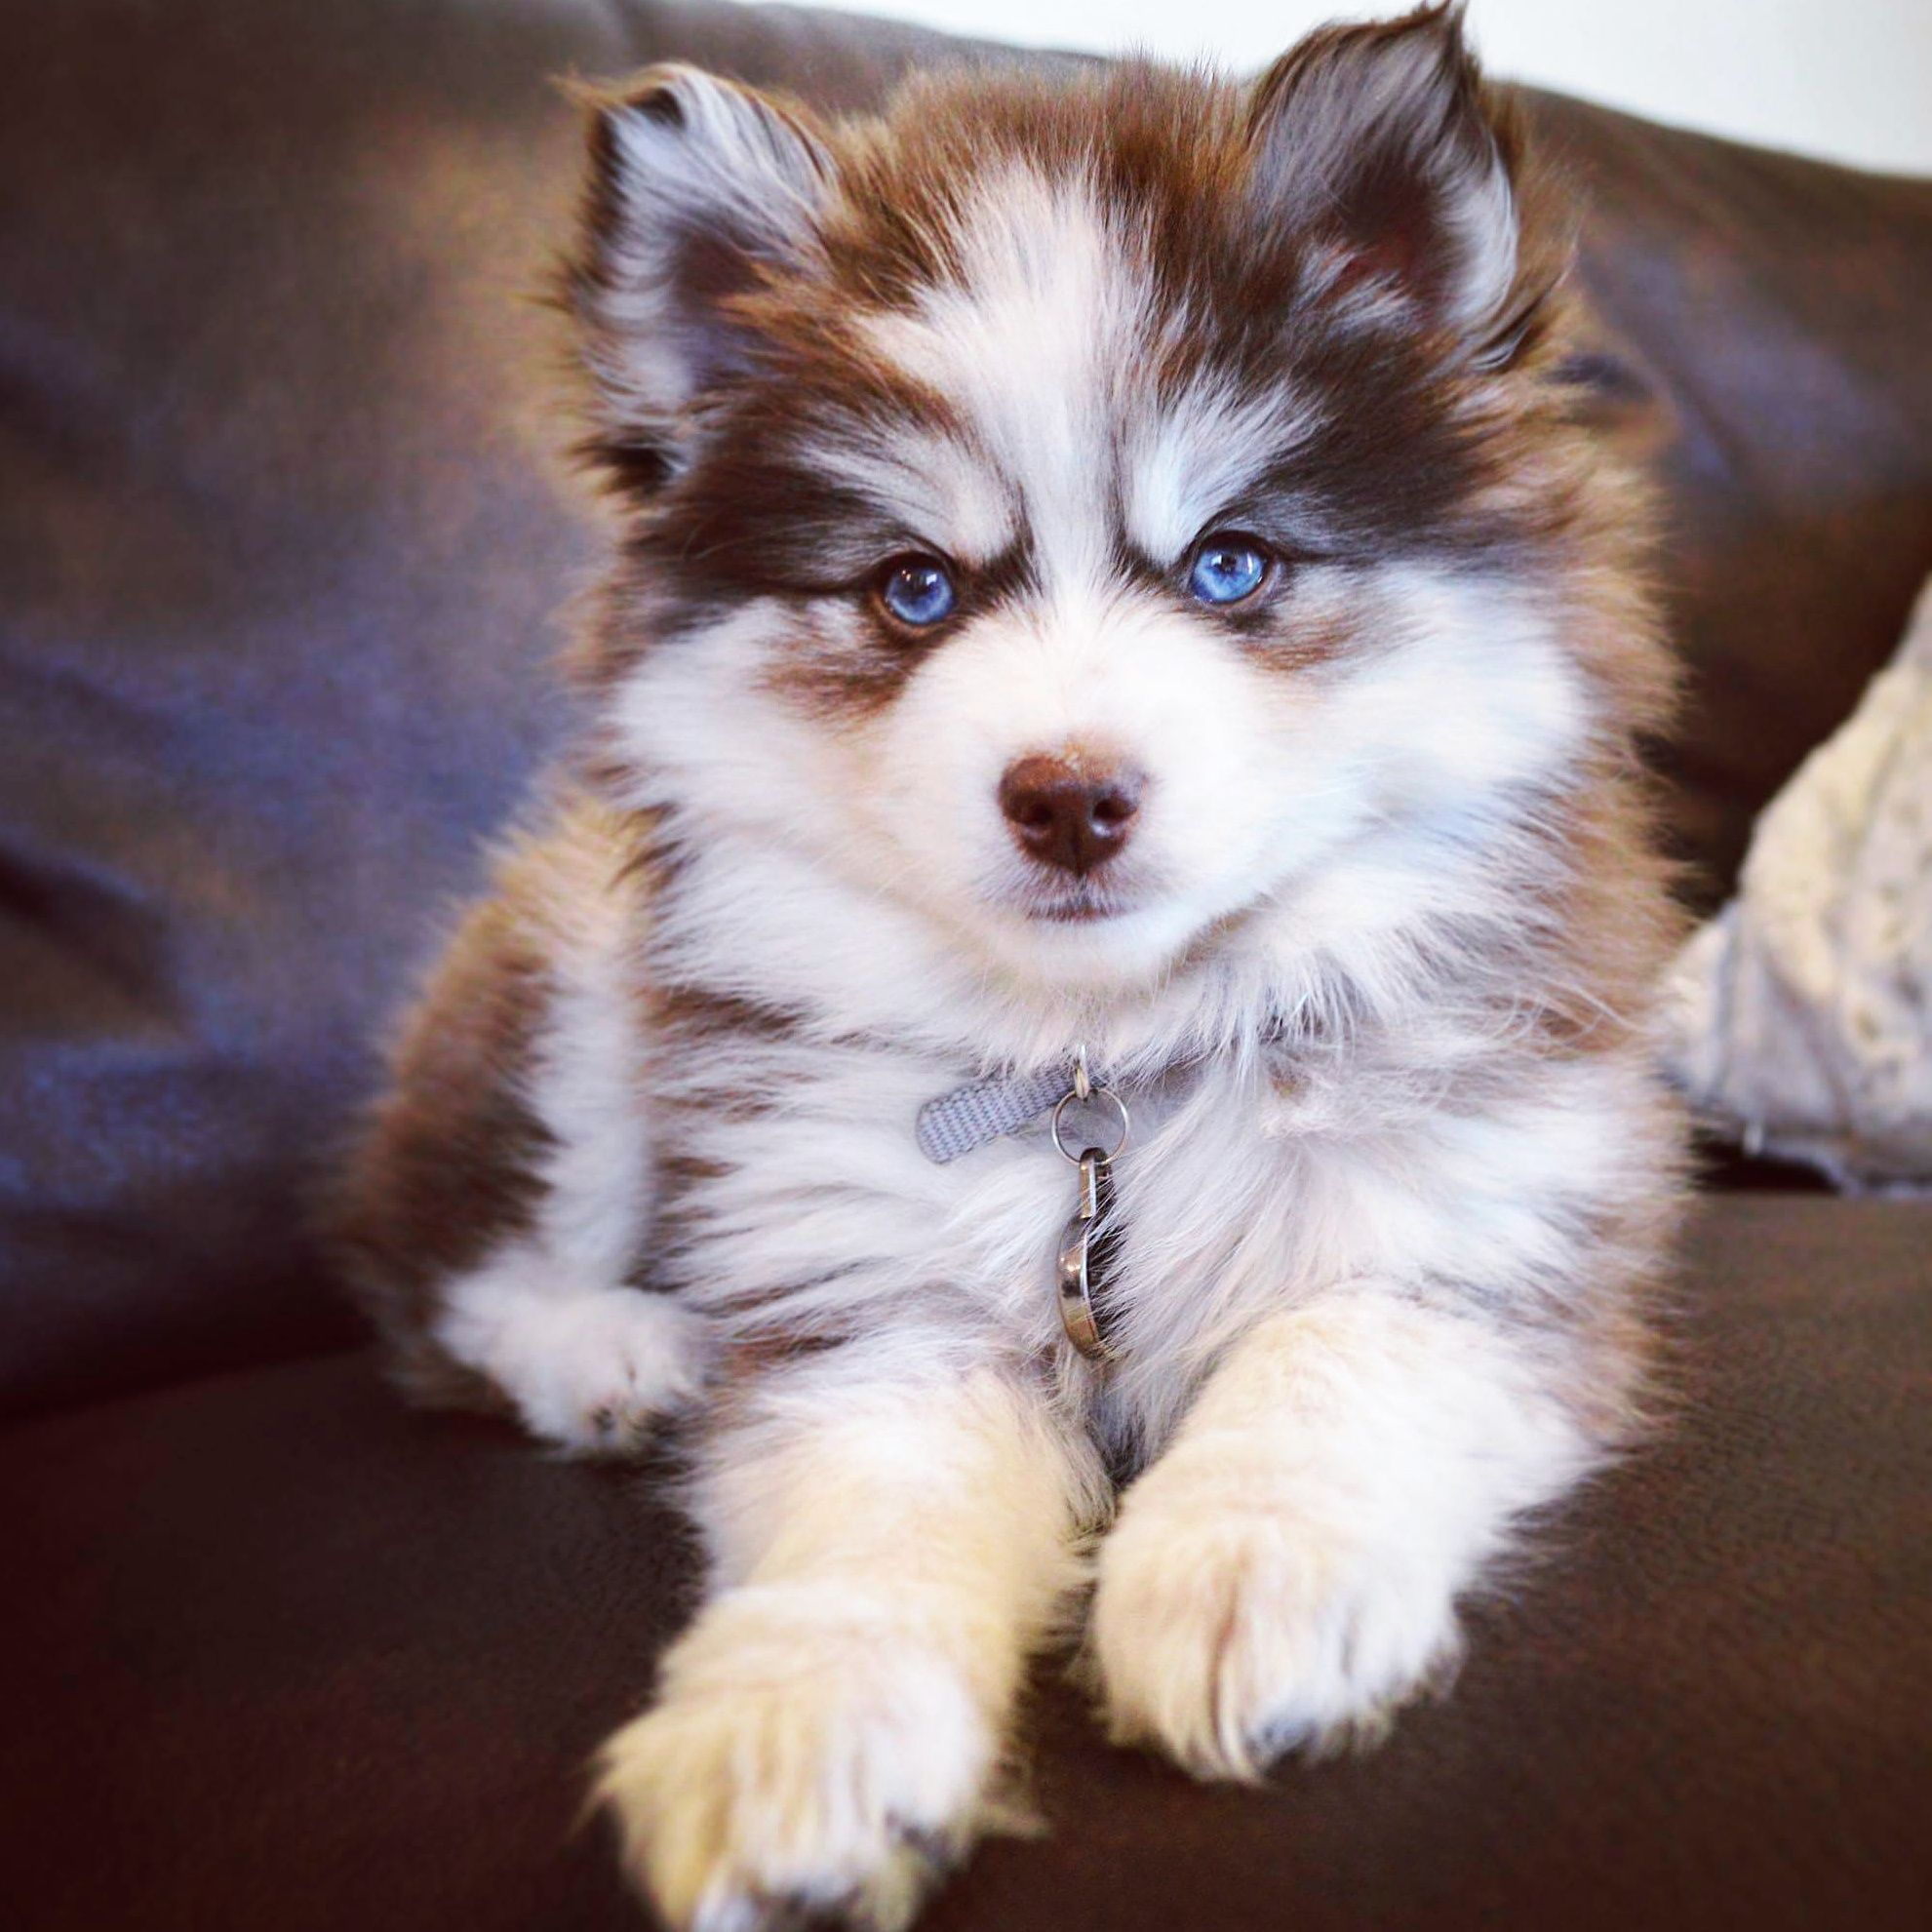 Kairi The Pomsky R Aww Pomsky Puppies Cute Baby Animals